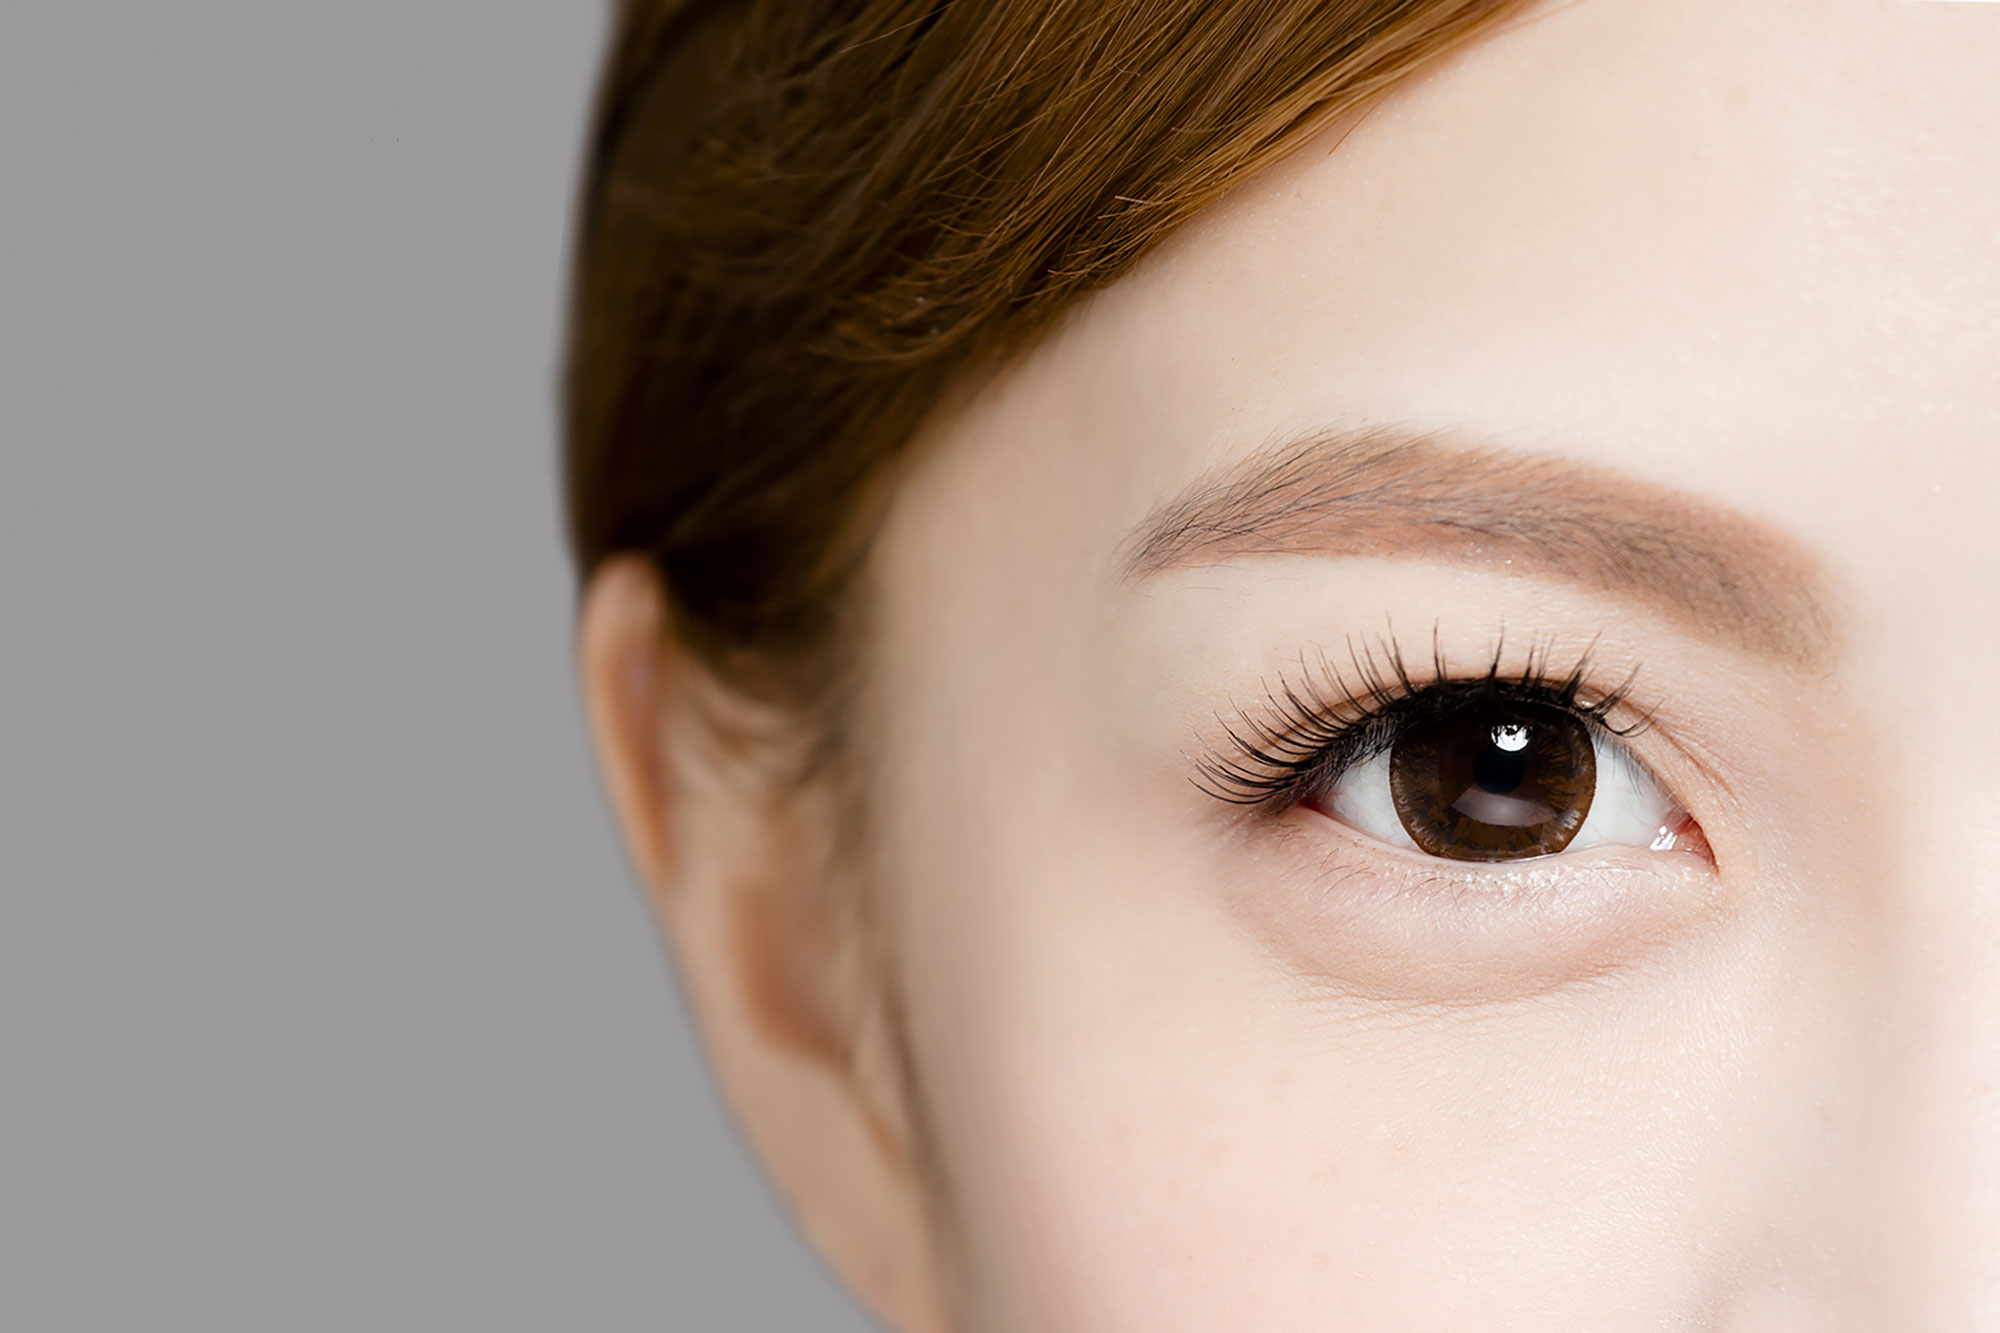 Double eyelid surgery - infold vs outfold. What is the difference?